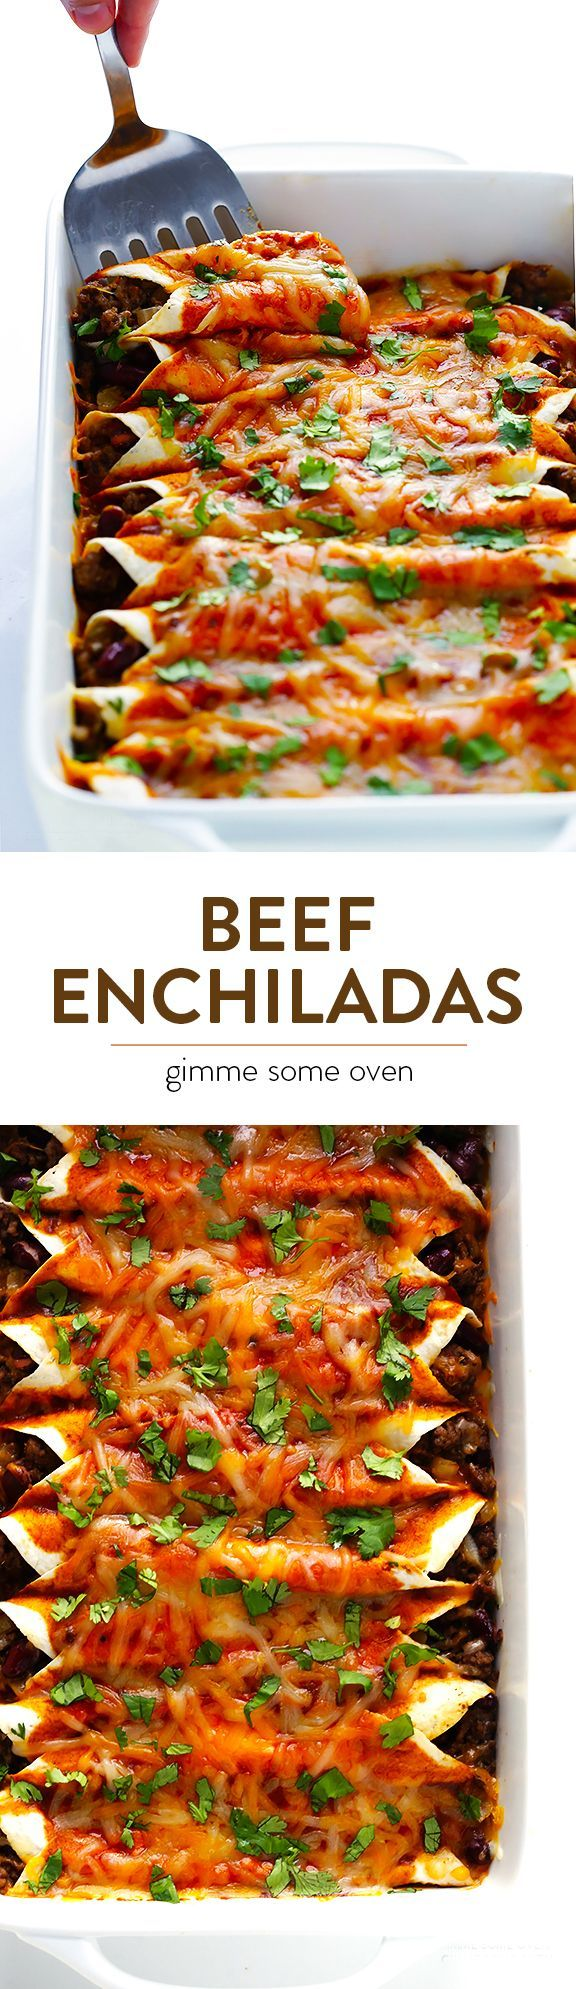 My favorite recipe for classic beef enchiladas, made with an easy homemade sauce and guaranteed to be a crowd pleaser!